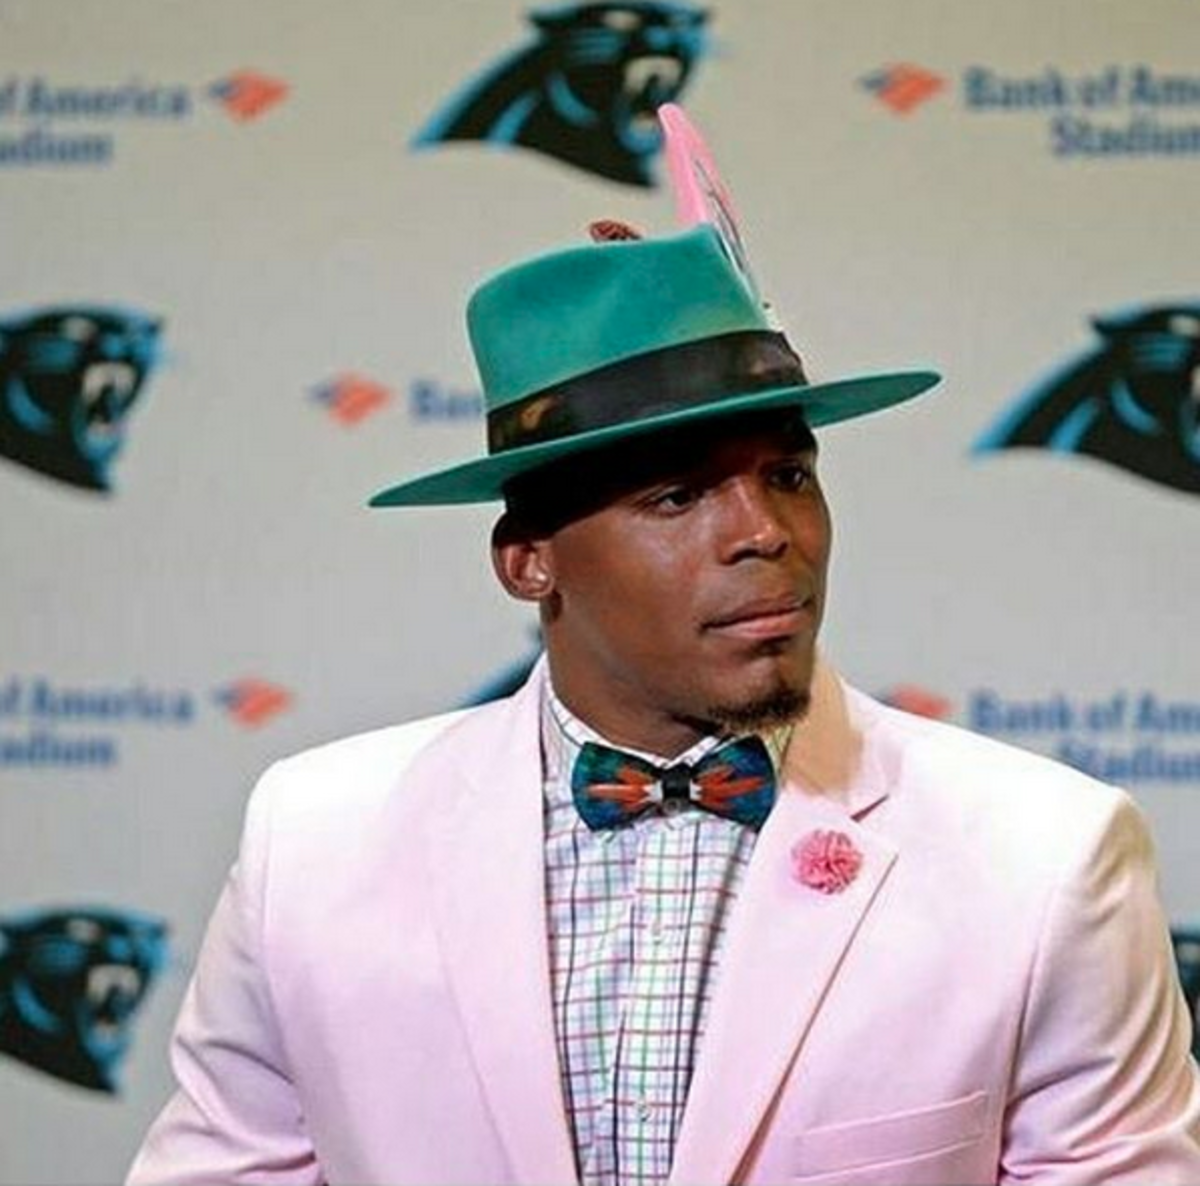 Cam Newton at his post game press conference